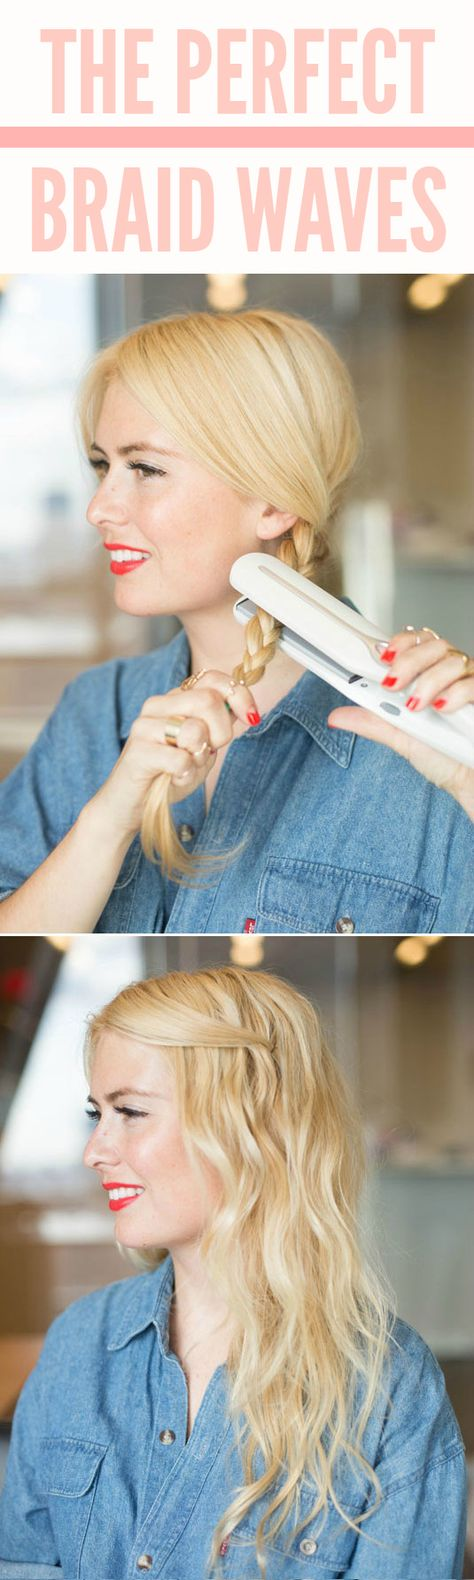 Braid your hair, then heat it up by pressing a flat iron over it to make imperfect waves. Check out the website to see more